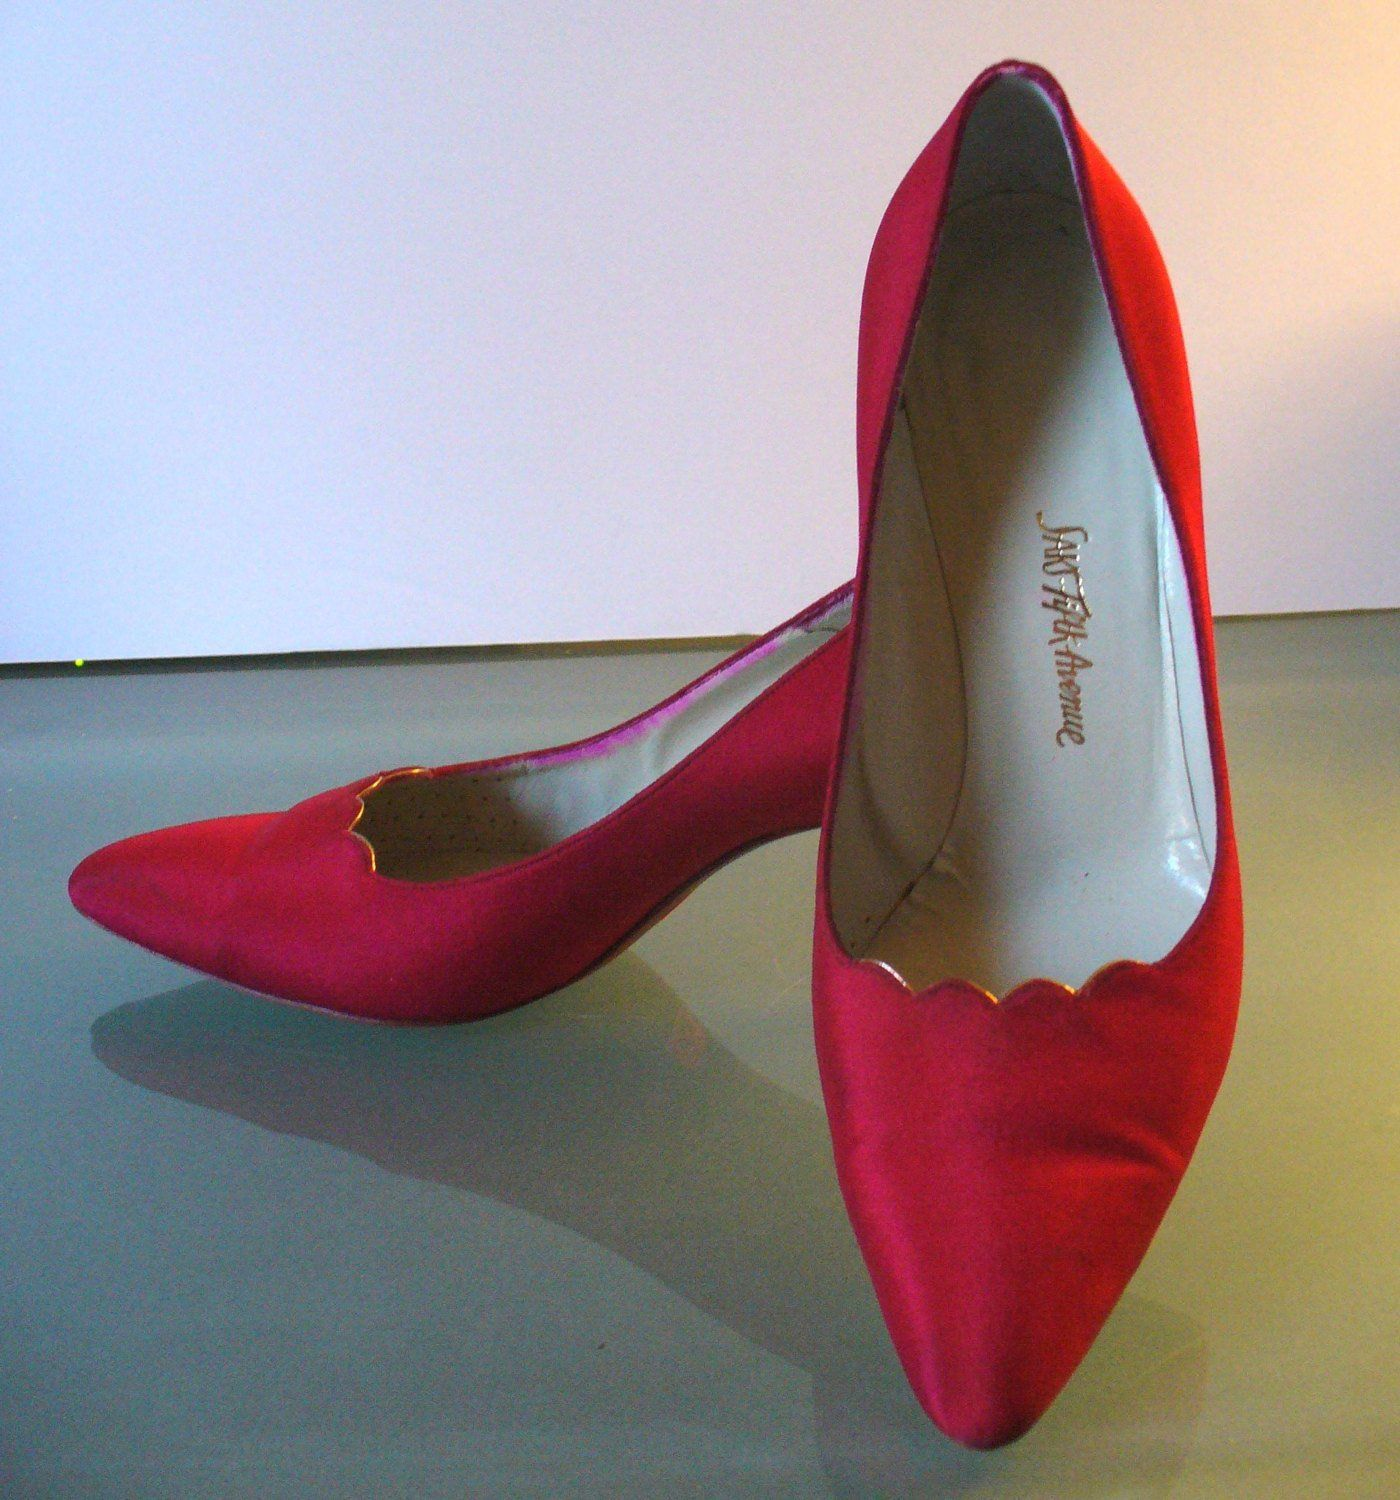 26a0690e459 Vintage Roger Vivier Saks Fifth Avenue Raspberry Silk Shoes Size 7.5 ...